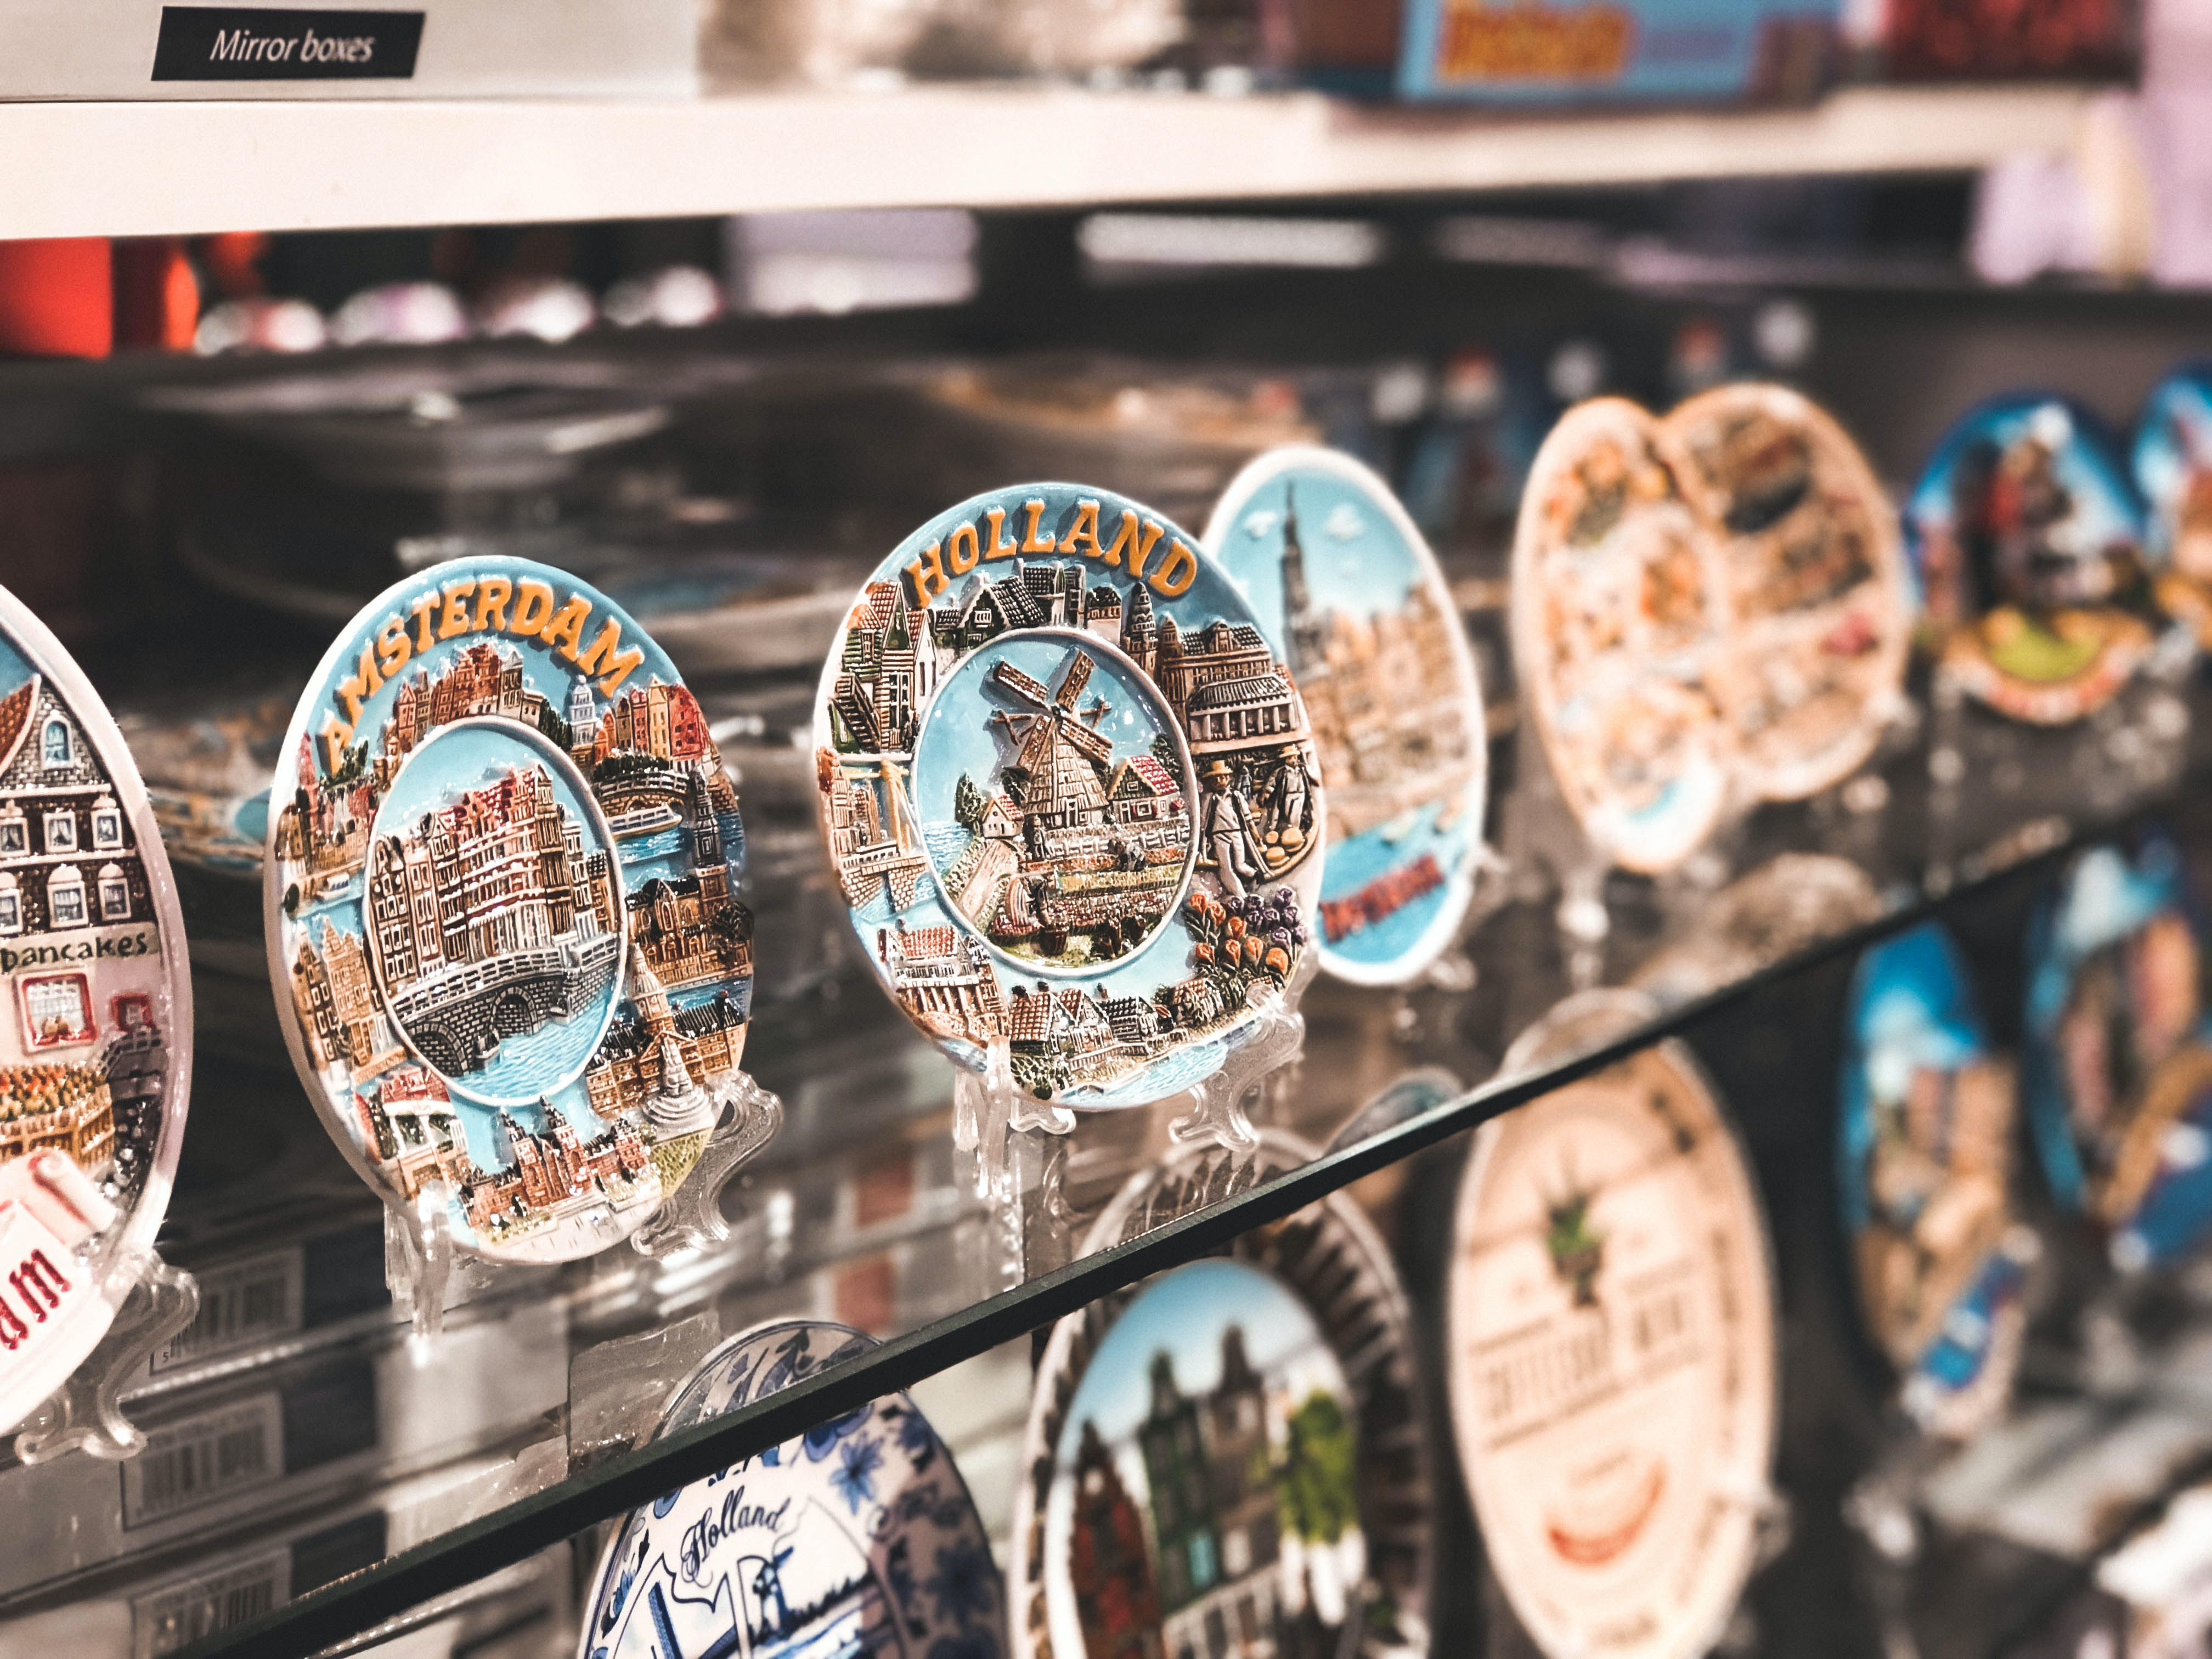 decorative plates display on glass shelf